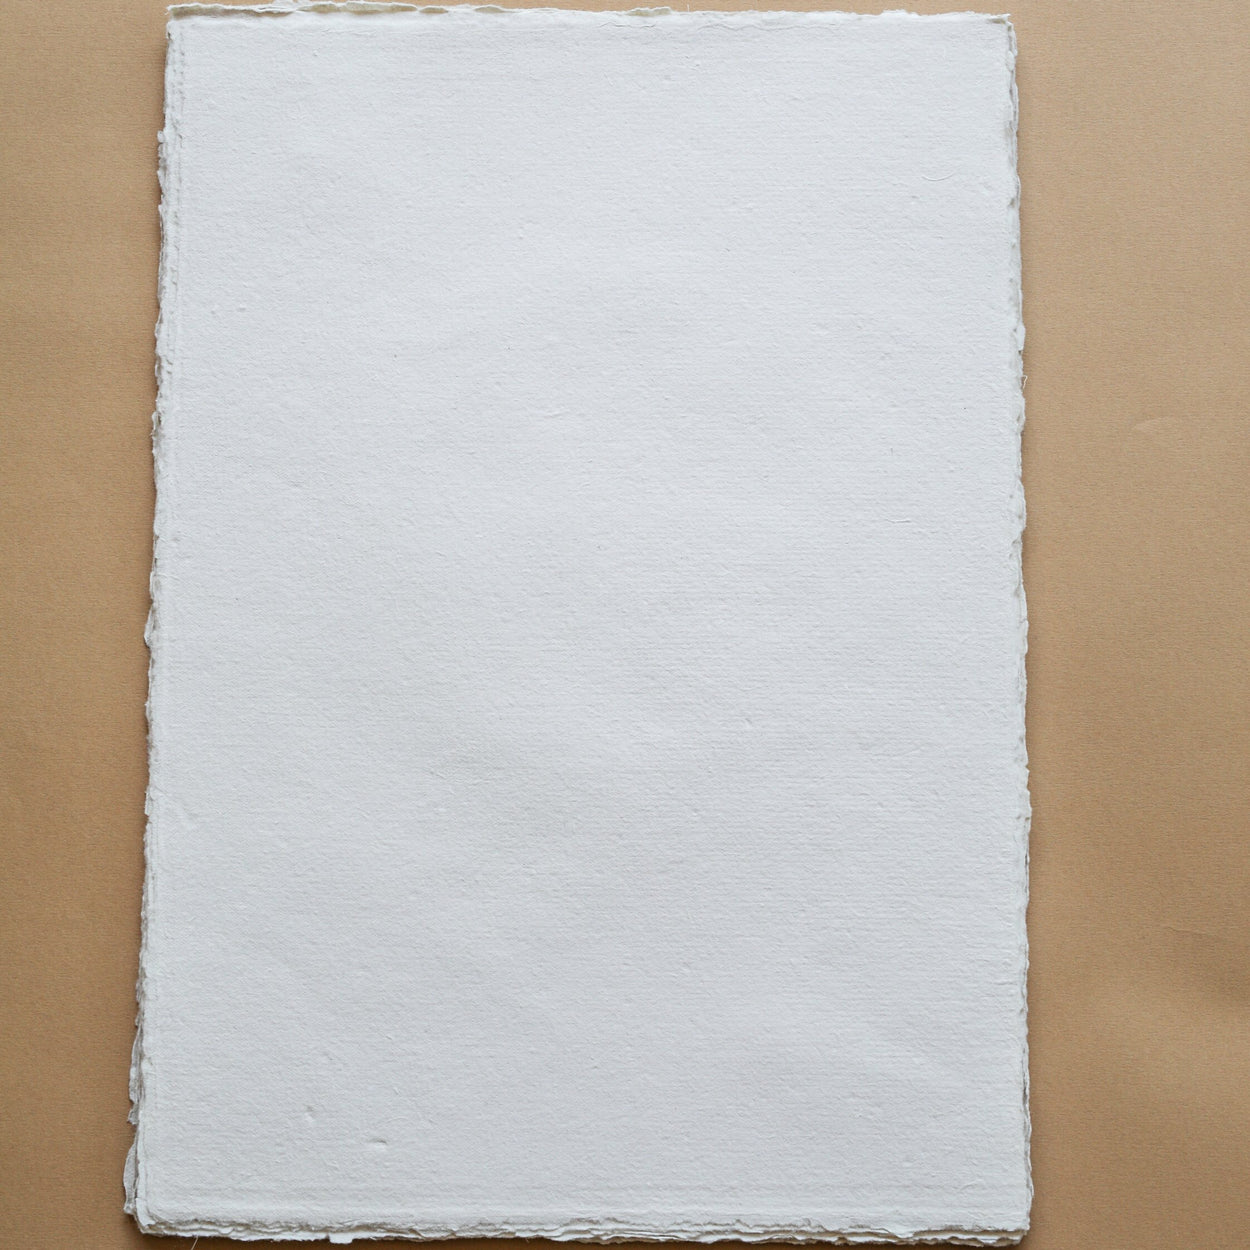 Beige deckle-edge cotton rag paper, A3